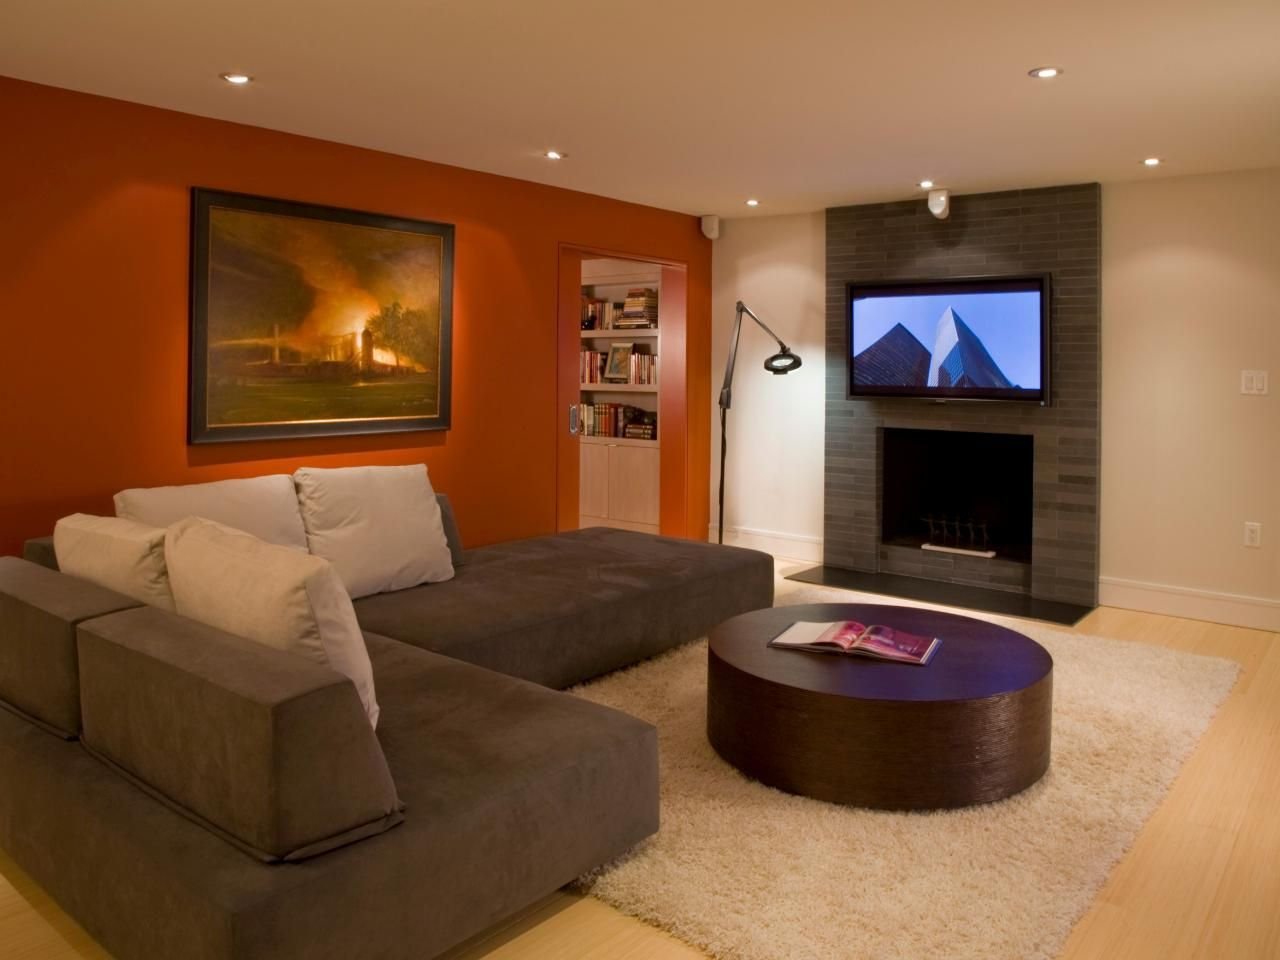 Modern Family Room With Red Accent Wall Living Room Colors Paint Colors For Living Room Accent Walls In Living Room #painting #an #accent #wall #in #living #room